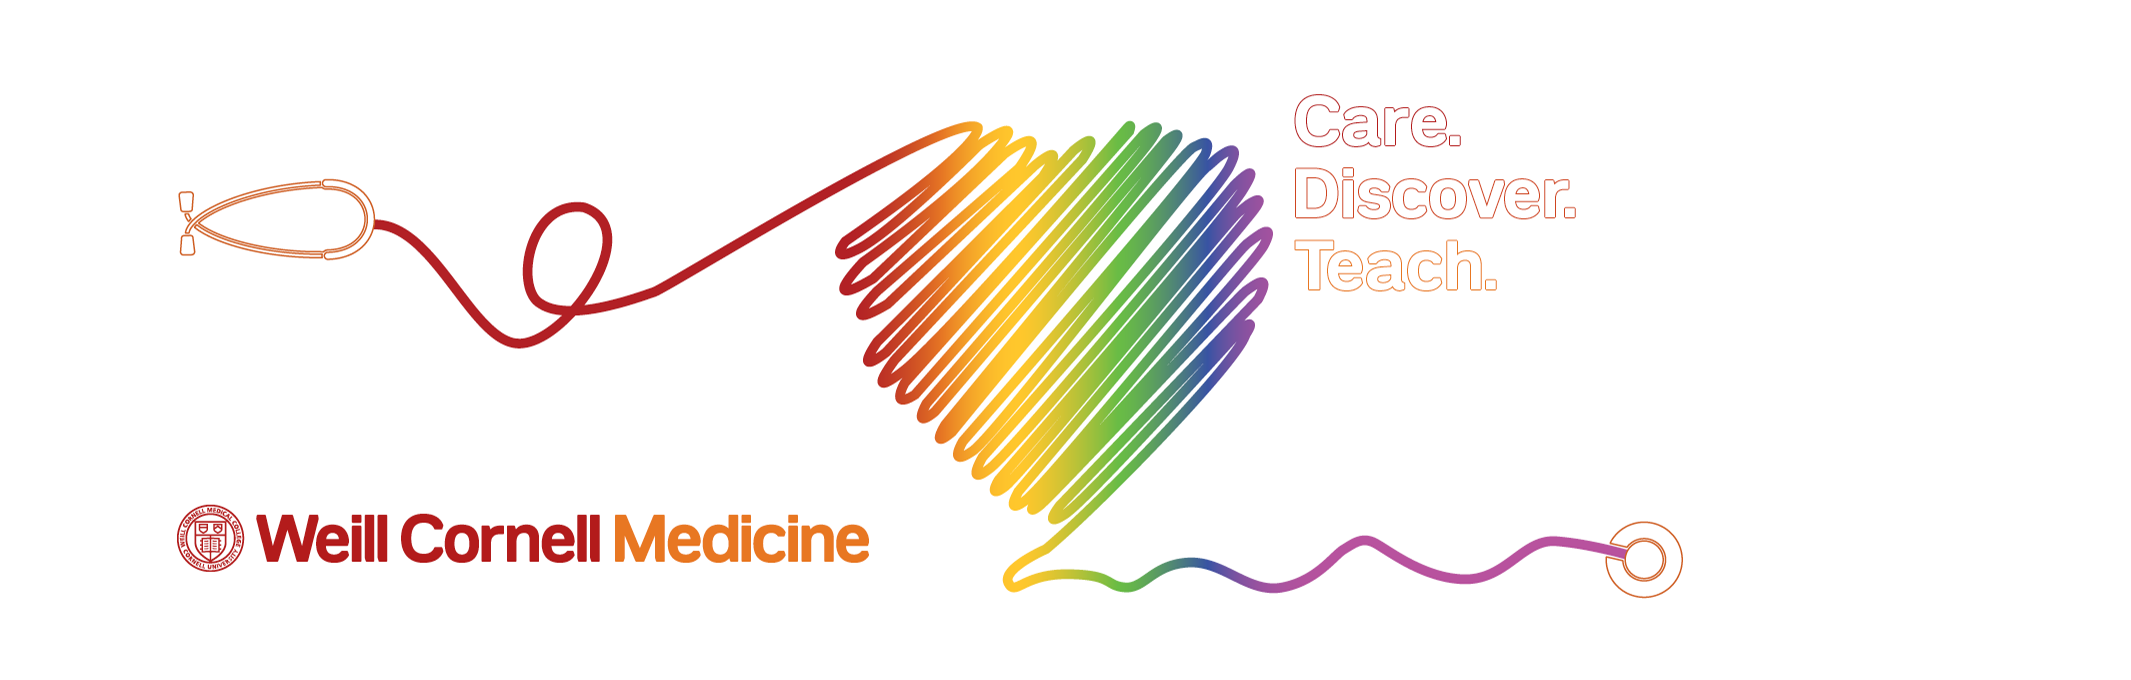 Weill Cornell Medicine logo with rainbow-colored heart